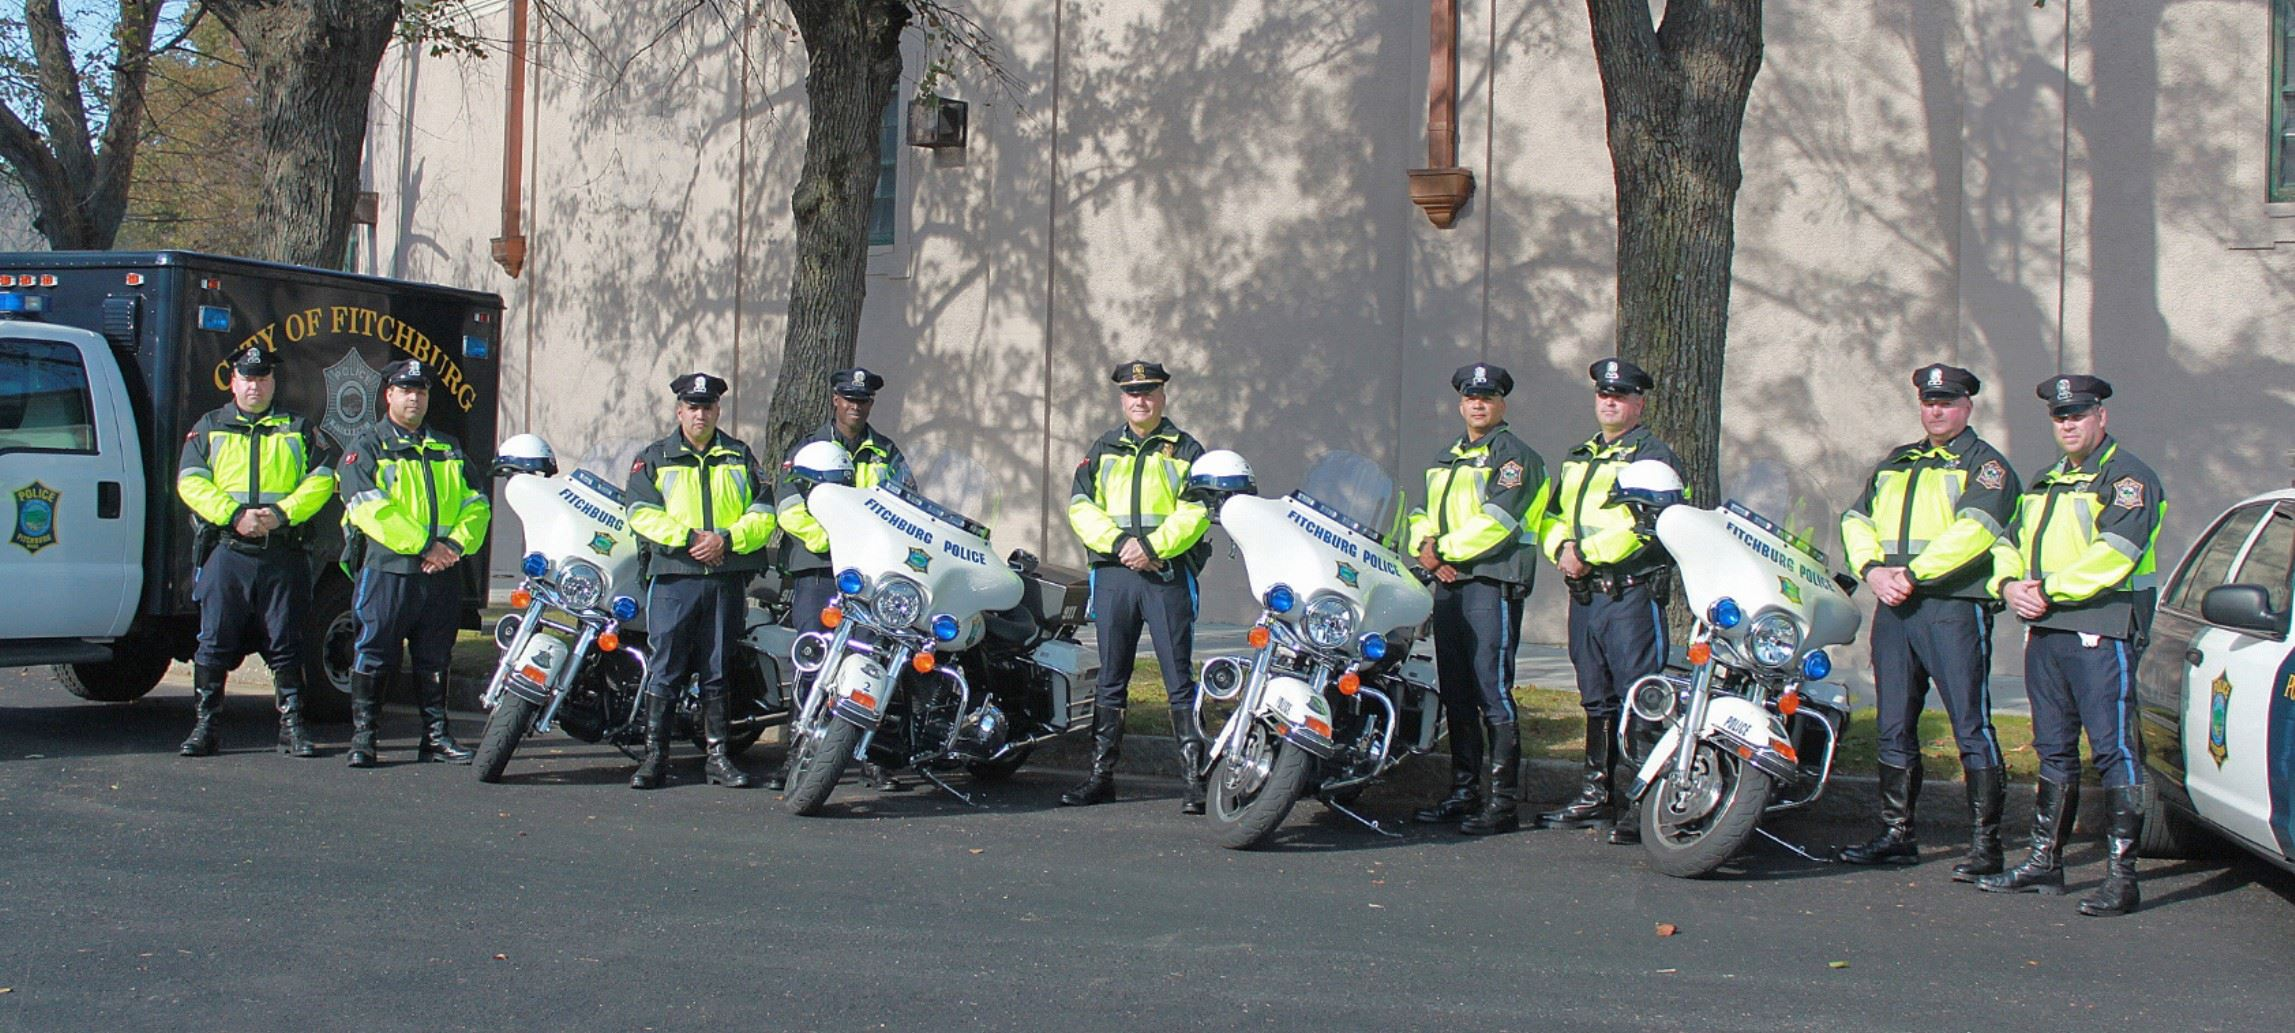 FPD Motorcycle Unit